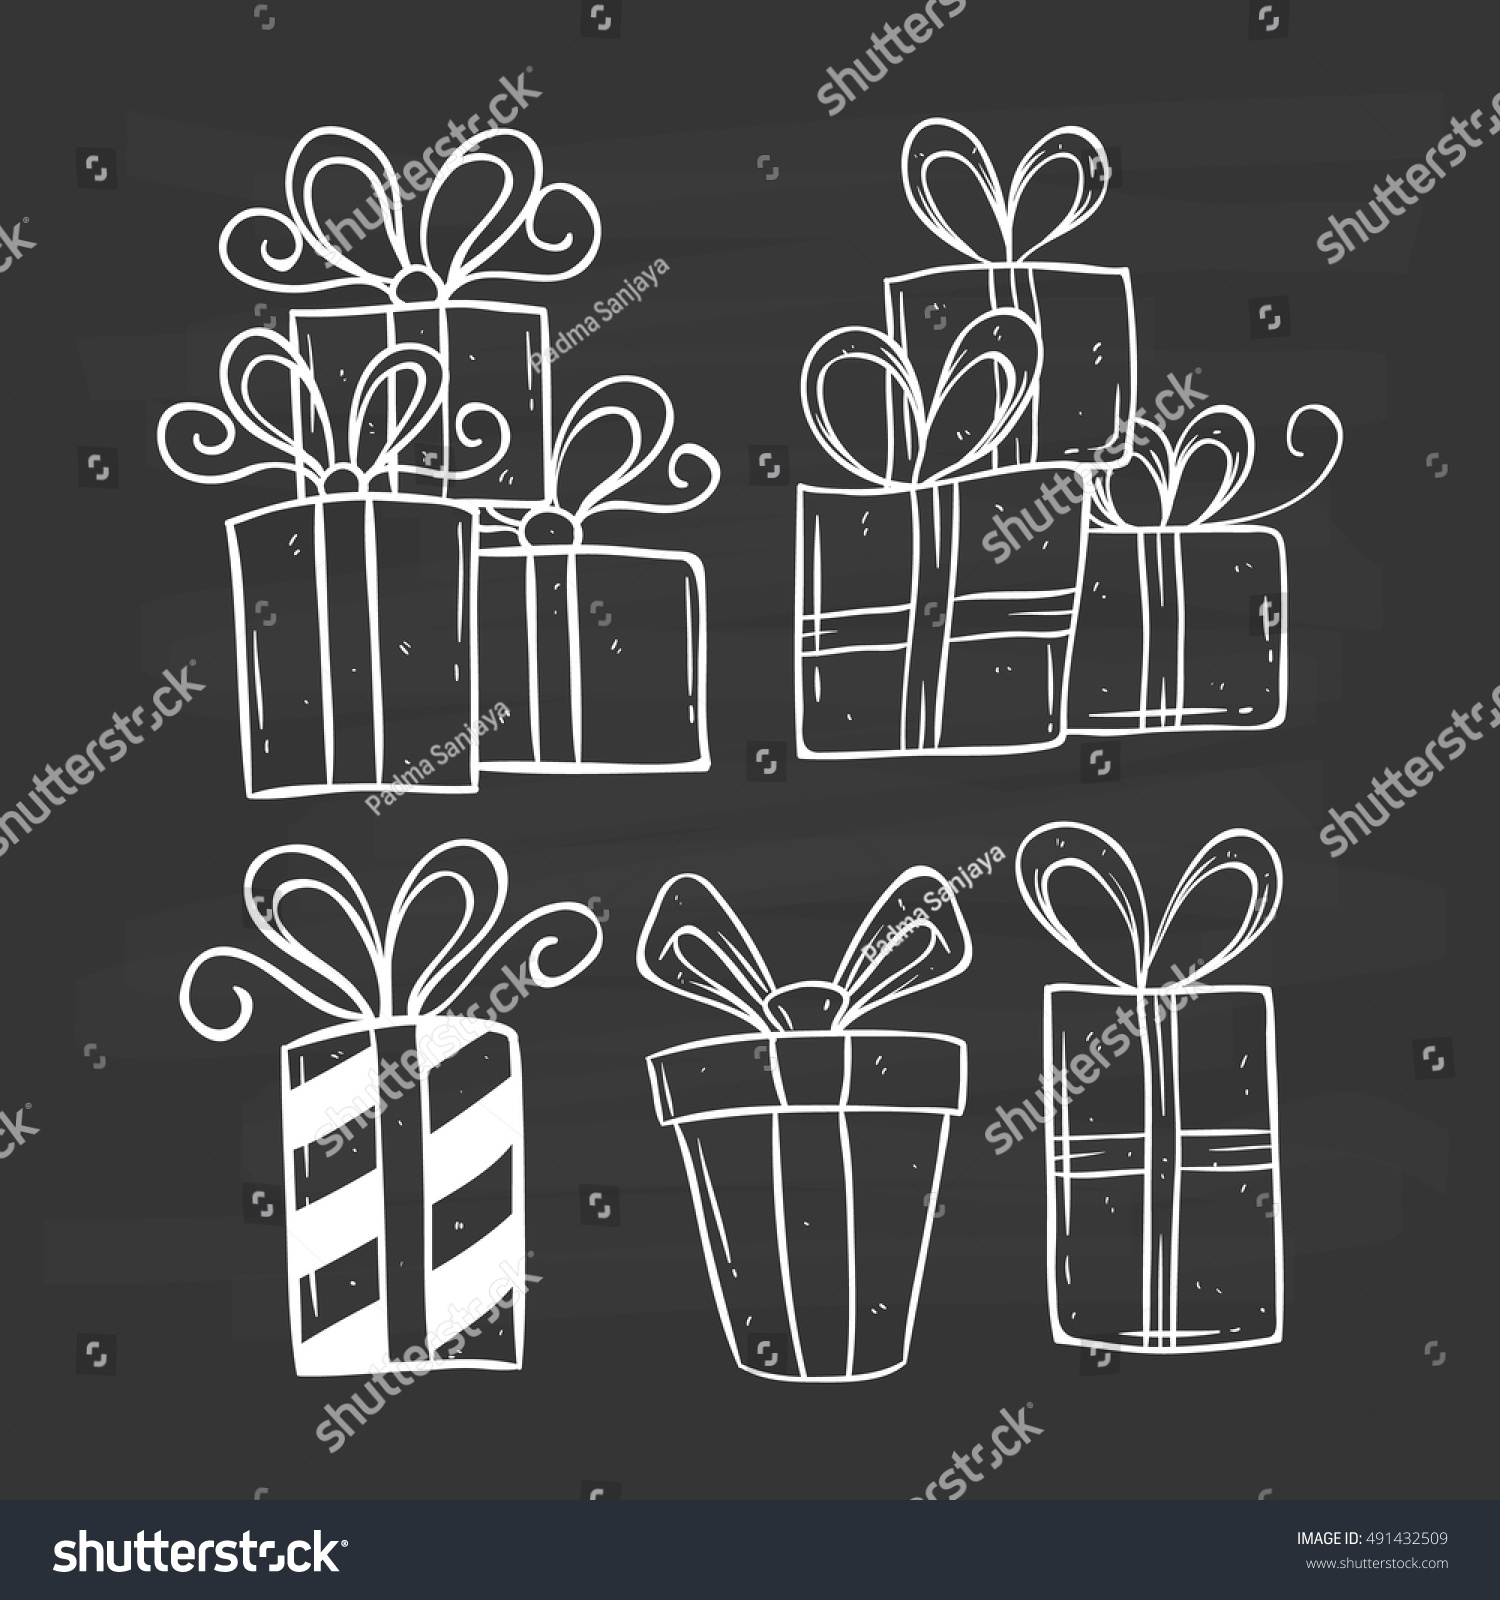 Set birthday gift using doodle art stock vector 491432509 set of birthday gift using doodle art or hand drawing style on chalkboard background negle Image collections